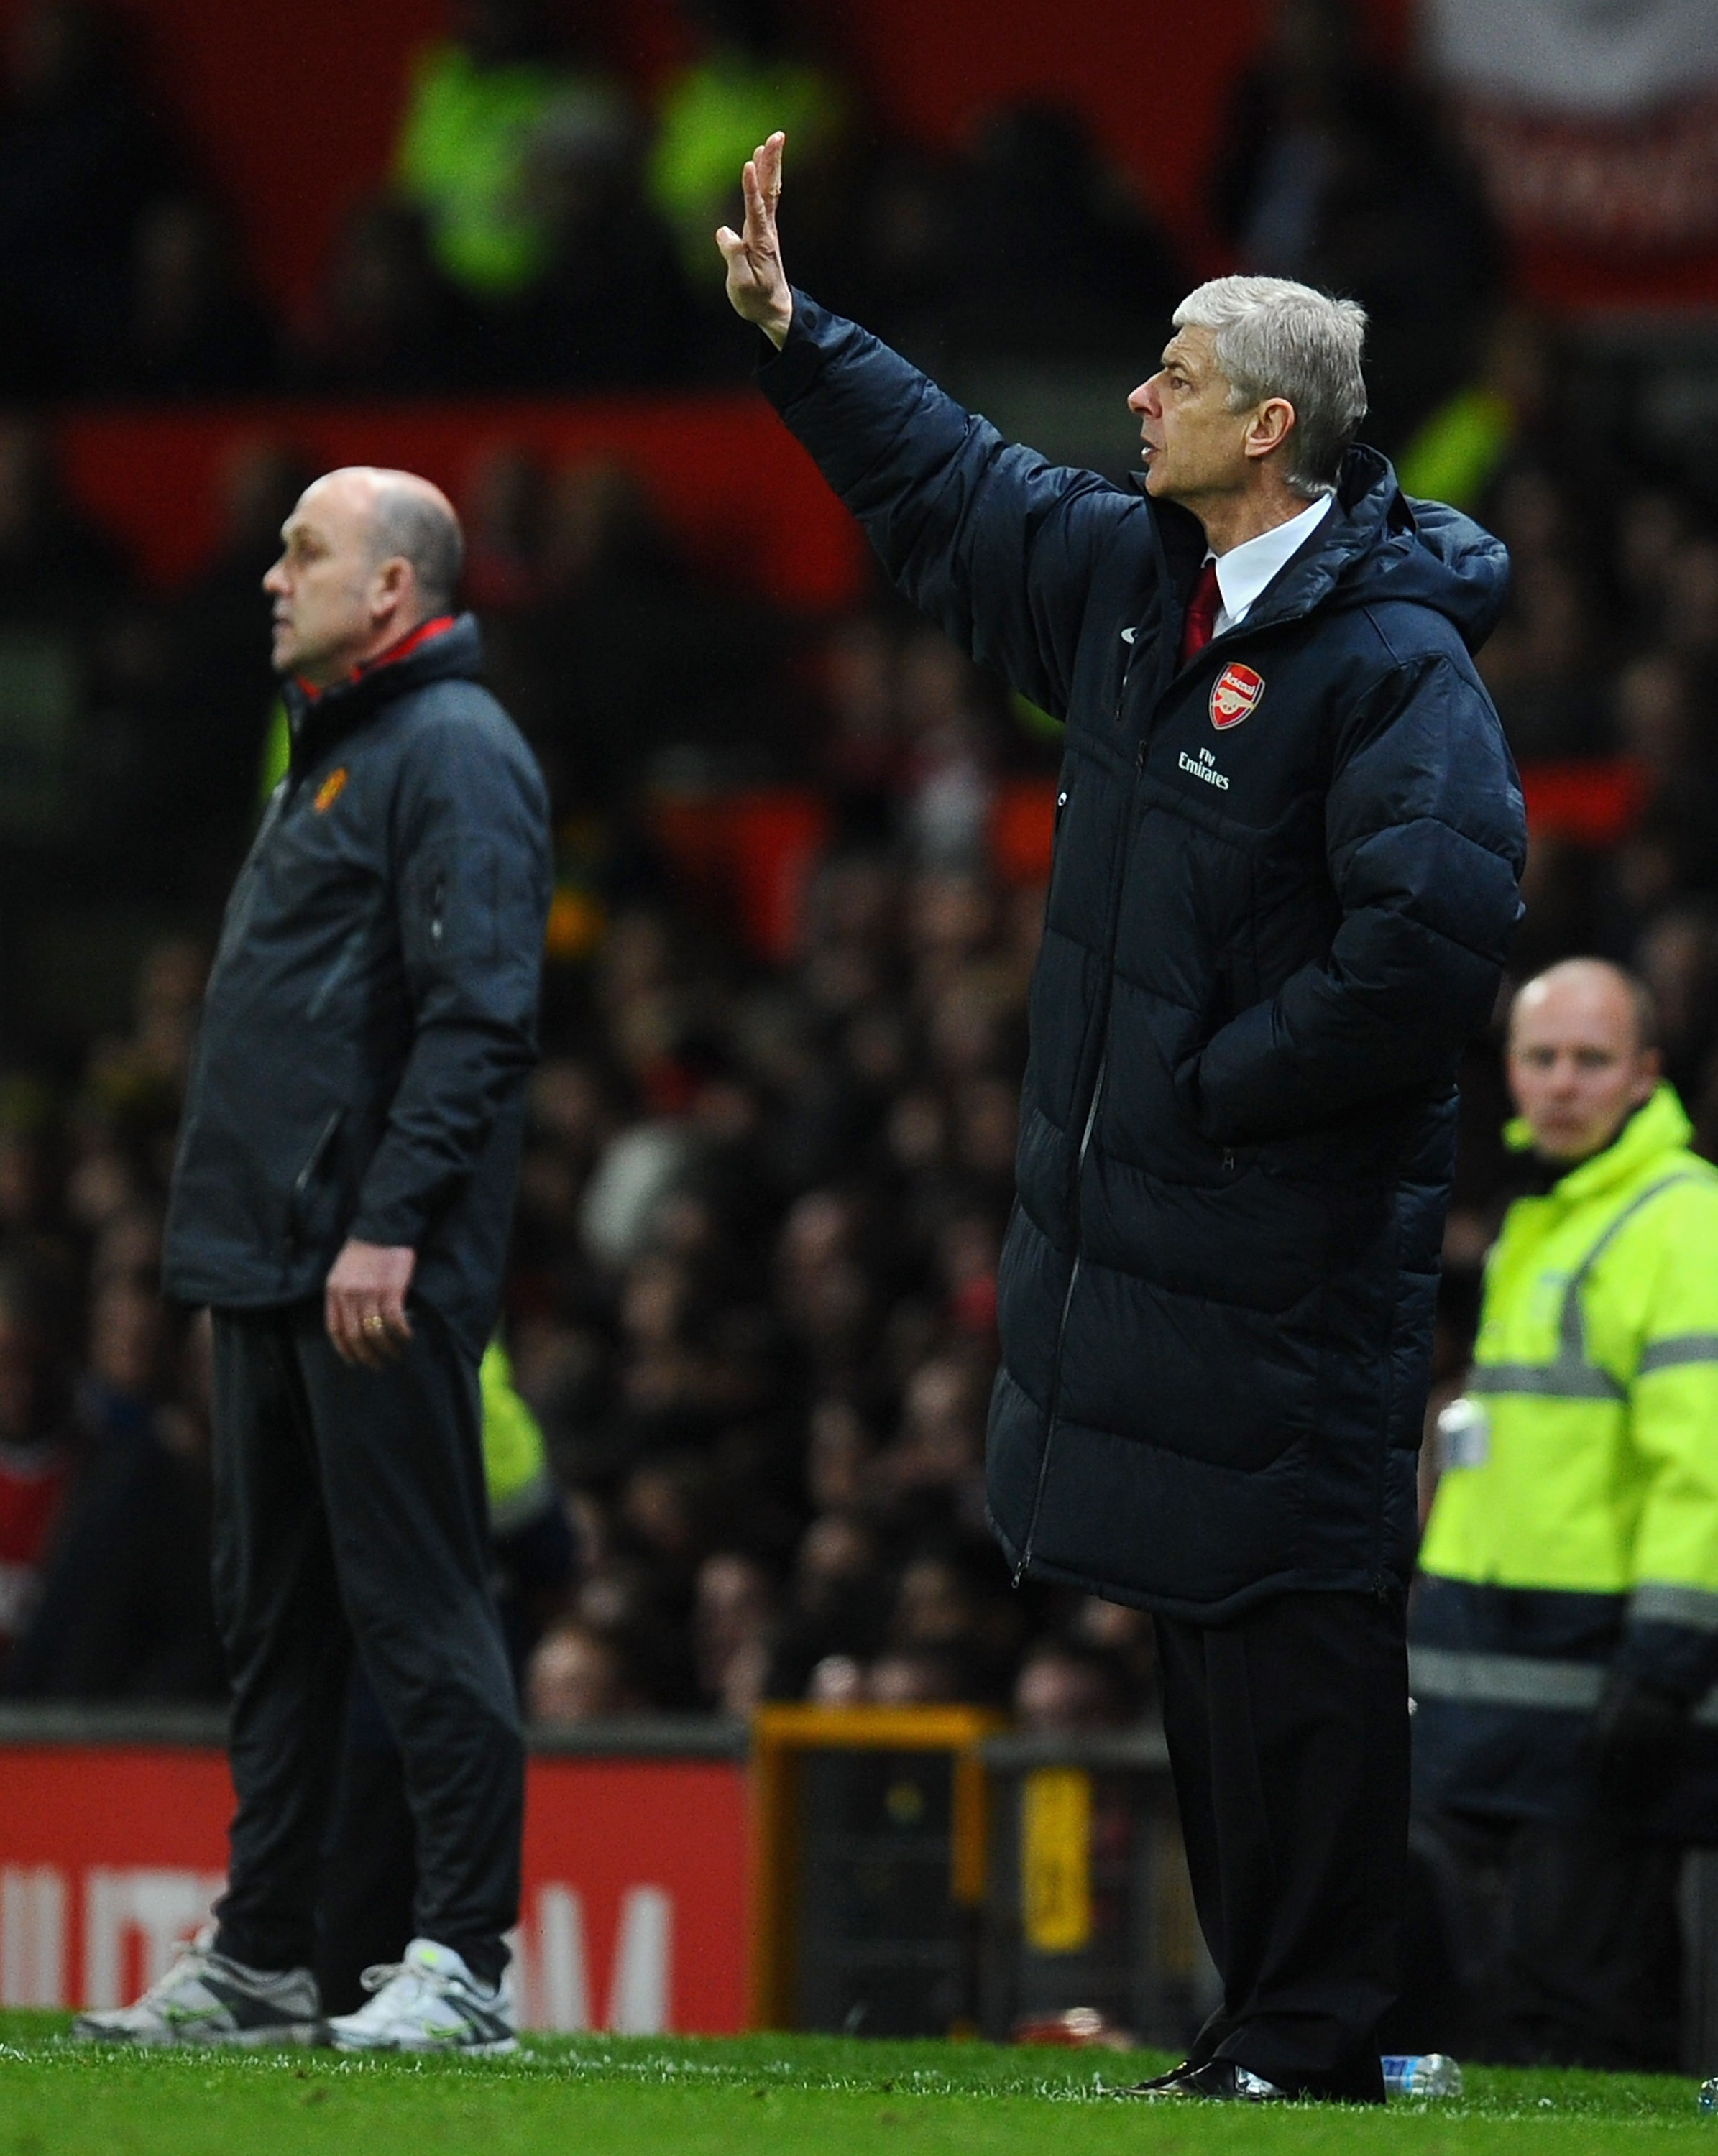 MANCHESTER, ENGLAND - MARCH 12:  Arsenal manager Arsene Wenger directs his team during the FA Cup sponsored by E.On Sixth Round match between Manchester United and Arsenal at Old Trafford on March 12, 2011 in Manchester, England.  (Photo by Clive Mason/Ge